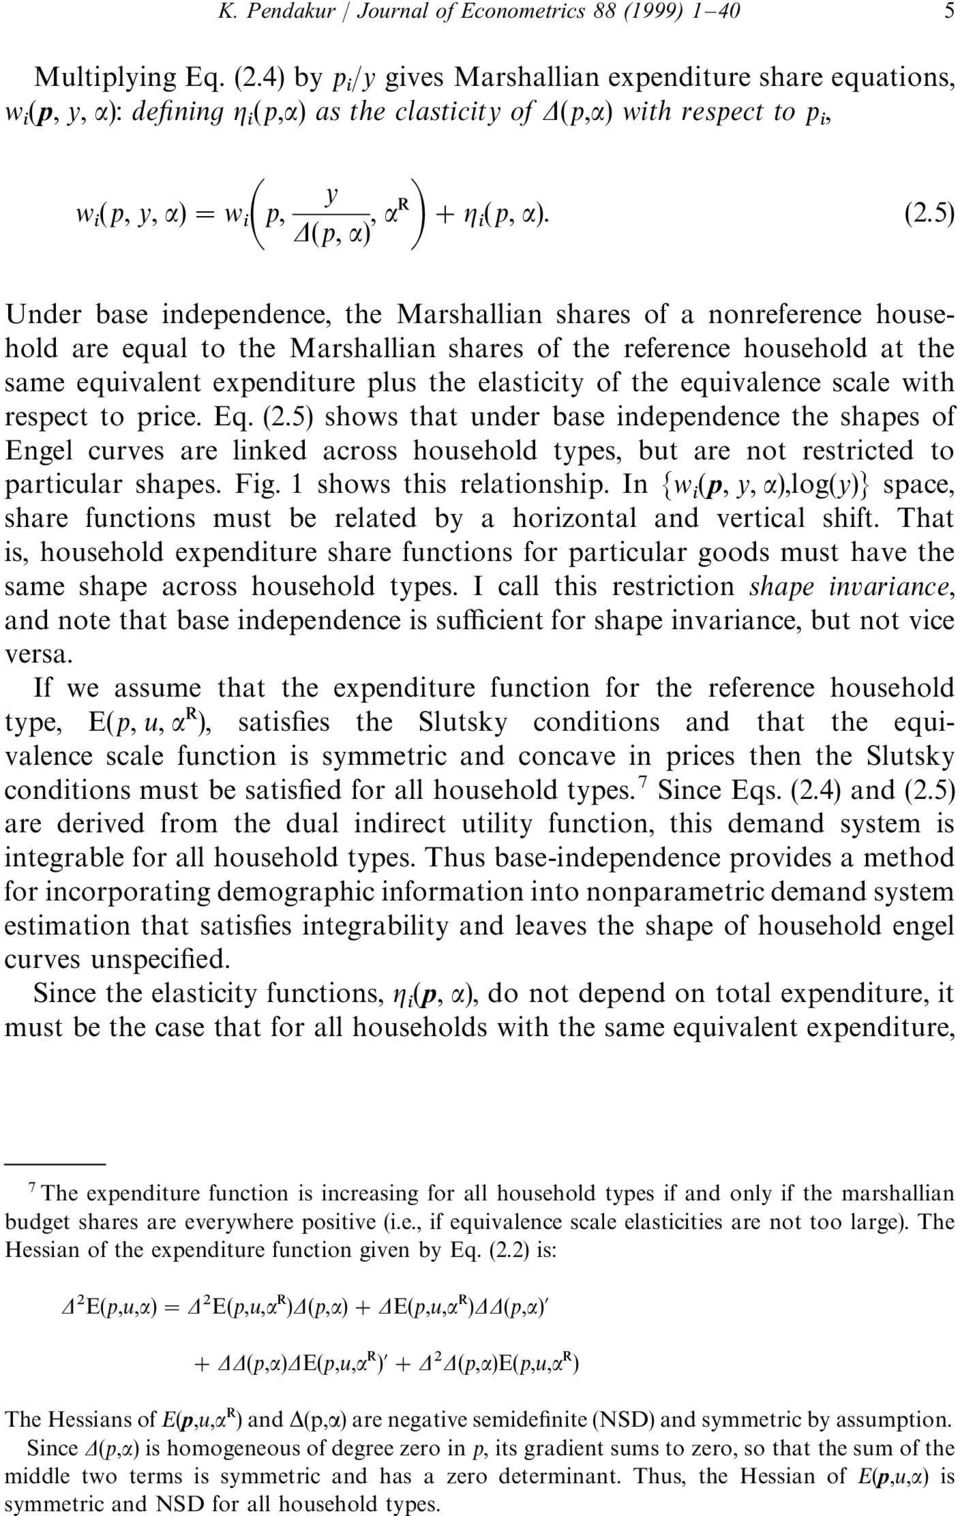 5) Under base independence, the Marshallian shares of a nonreference household are equal to the Marshallian shares of the reference household at the same equivalent expenditure plus the elasticity of